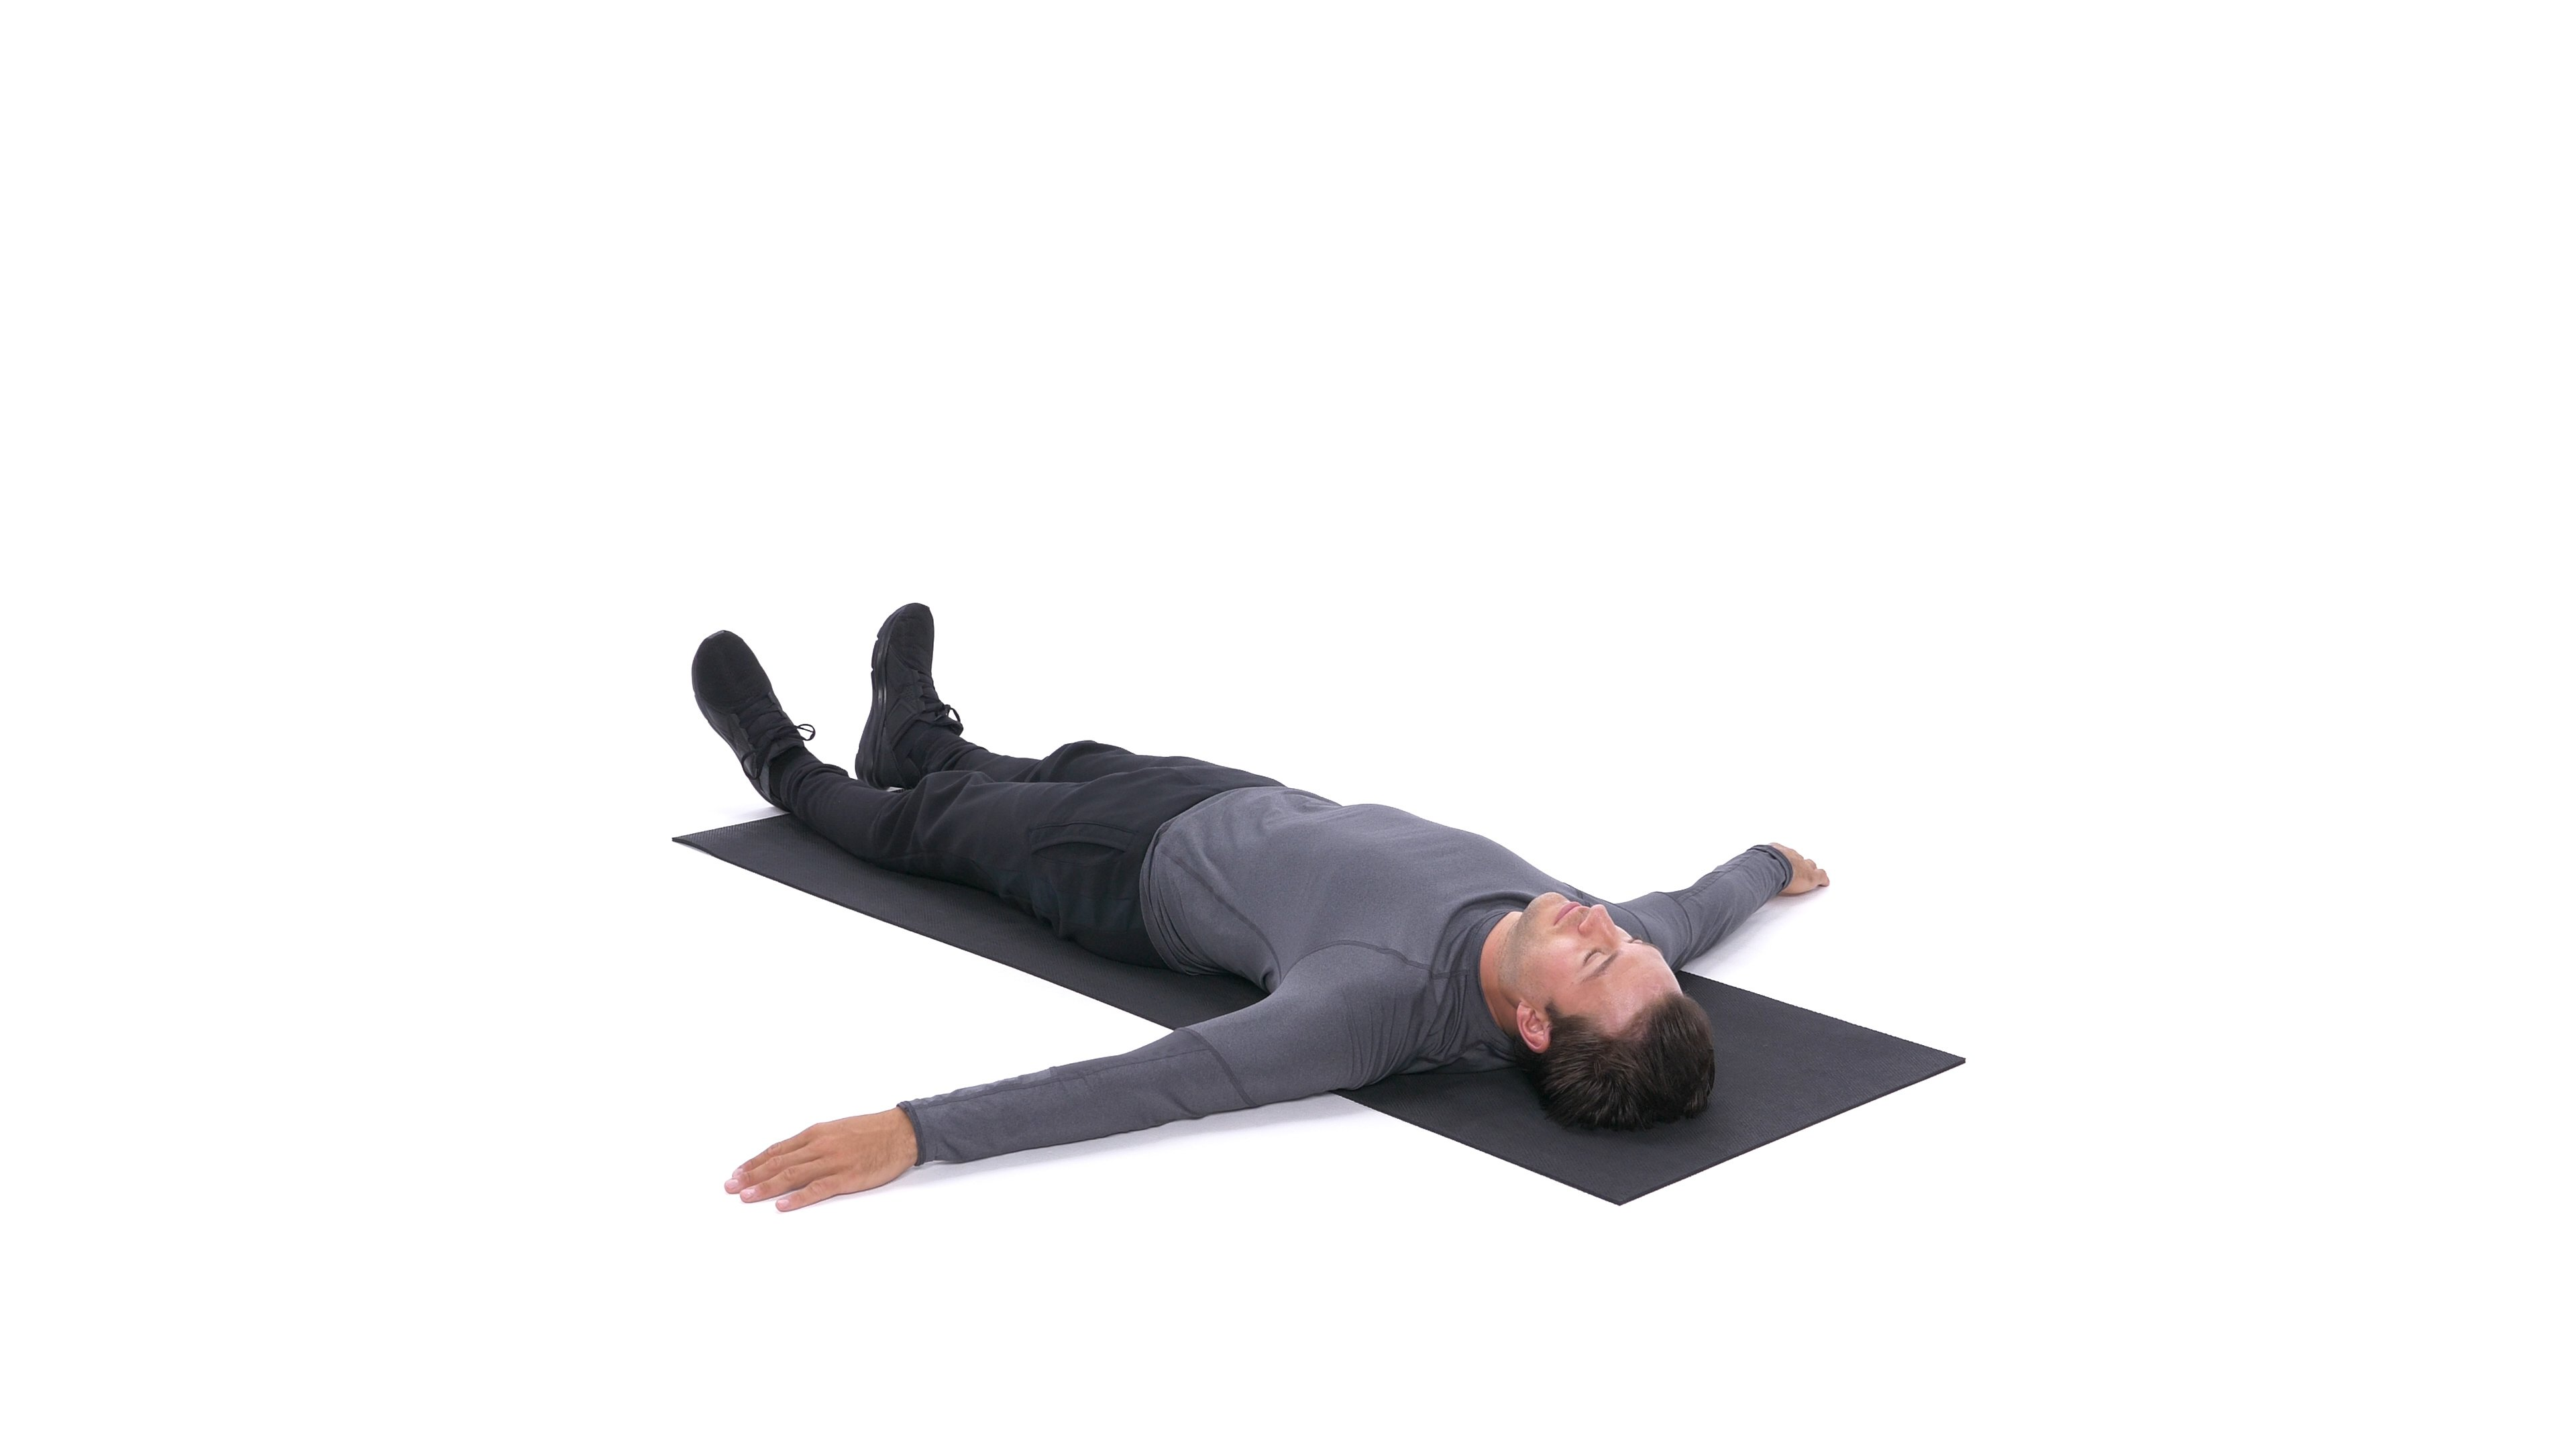 Single-leg lying cross-over stretch image